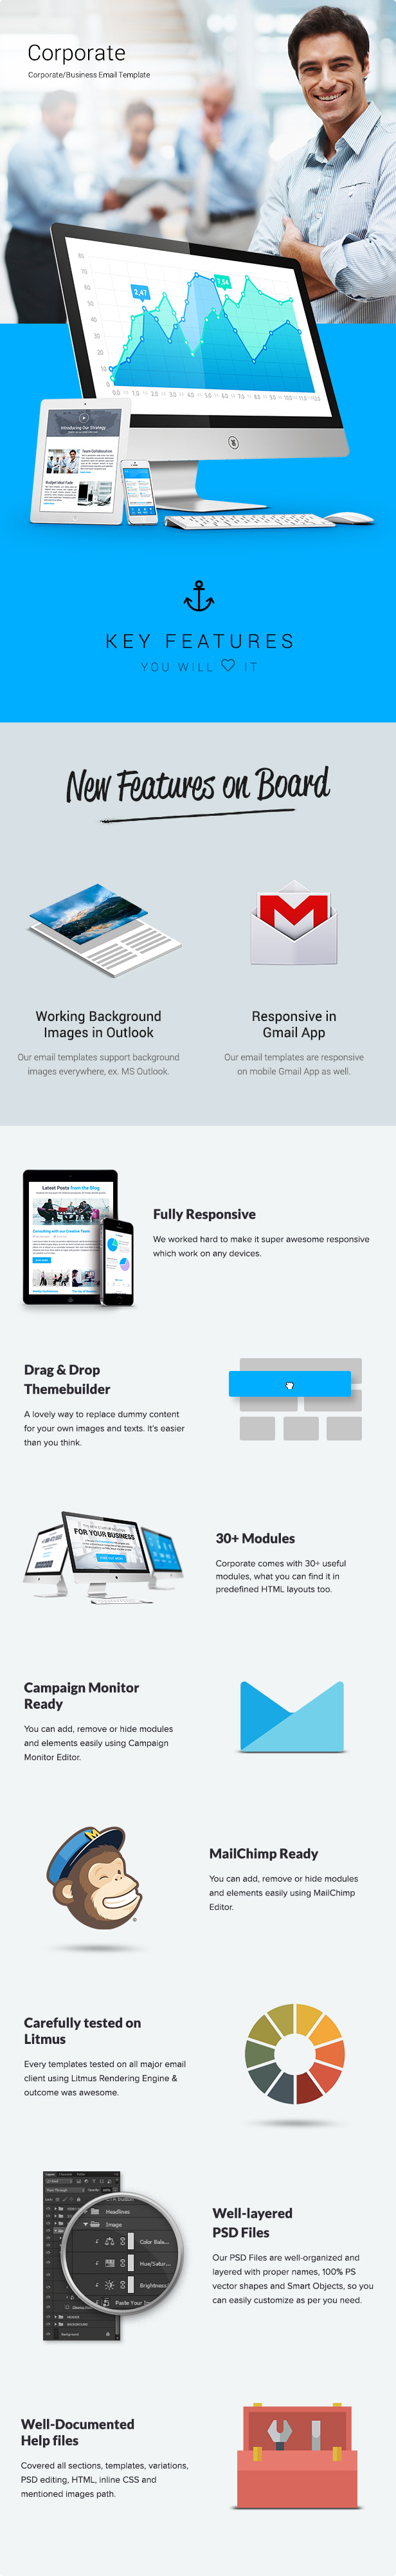 Corporate multipurpose b2b e newsletter builder access by jeetug corporate multipurpose b2b e newsletter template spiritdancerdesigns Image collections